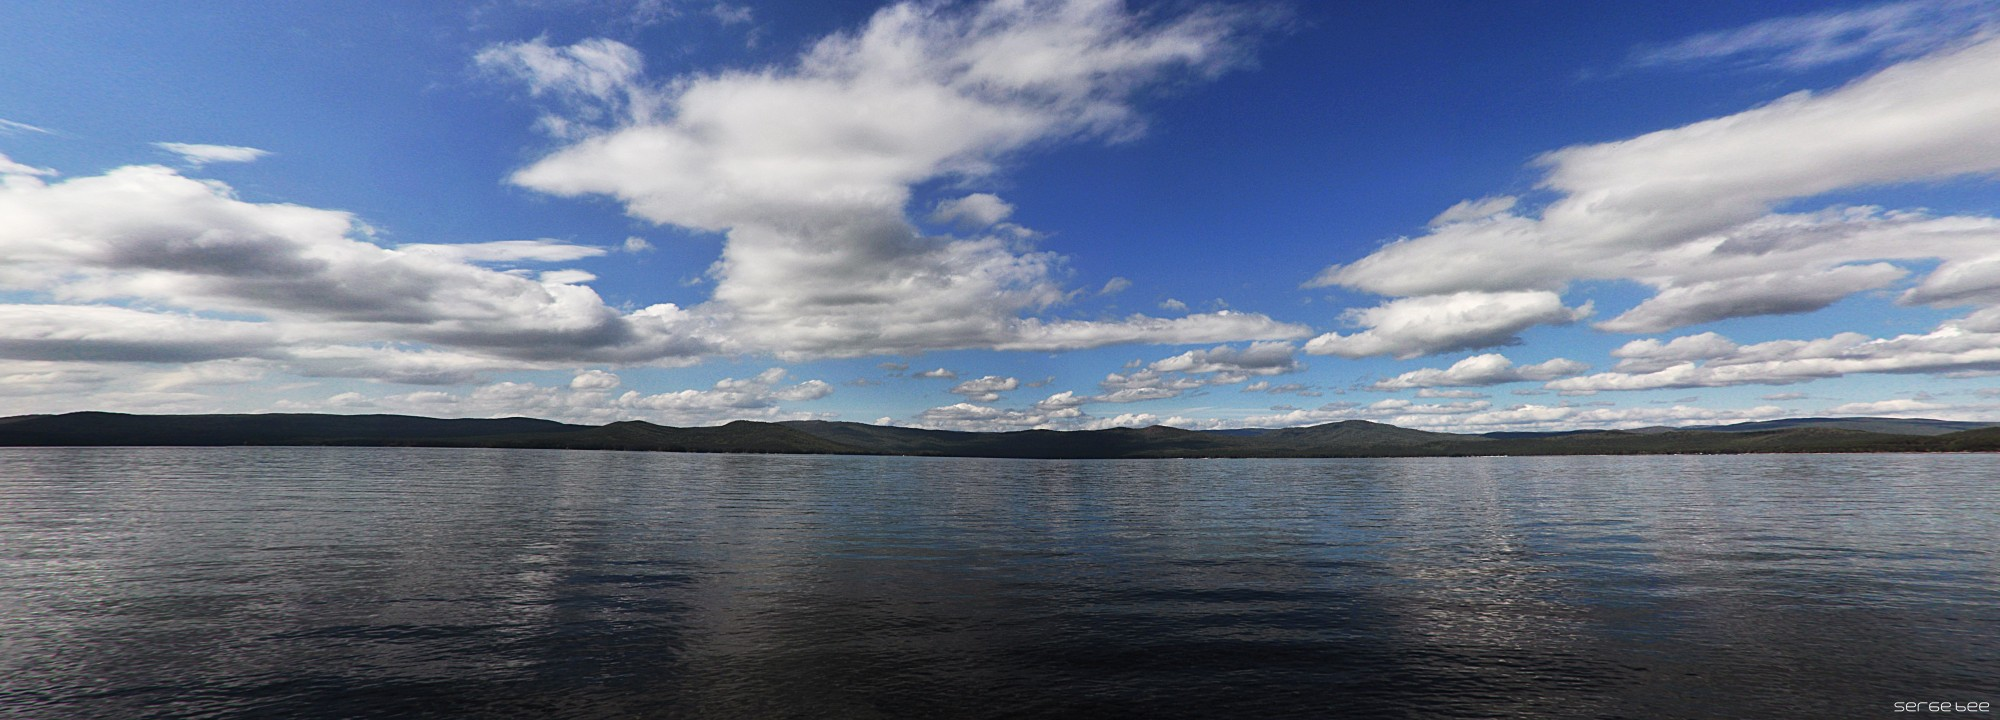 "photo ""lake Turgoyak"" tags: landscape, panoramic, Turgoyal lake Ural озеро Турго"